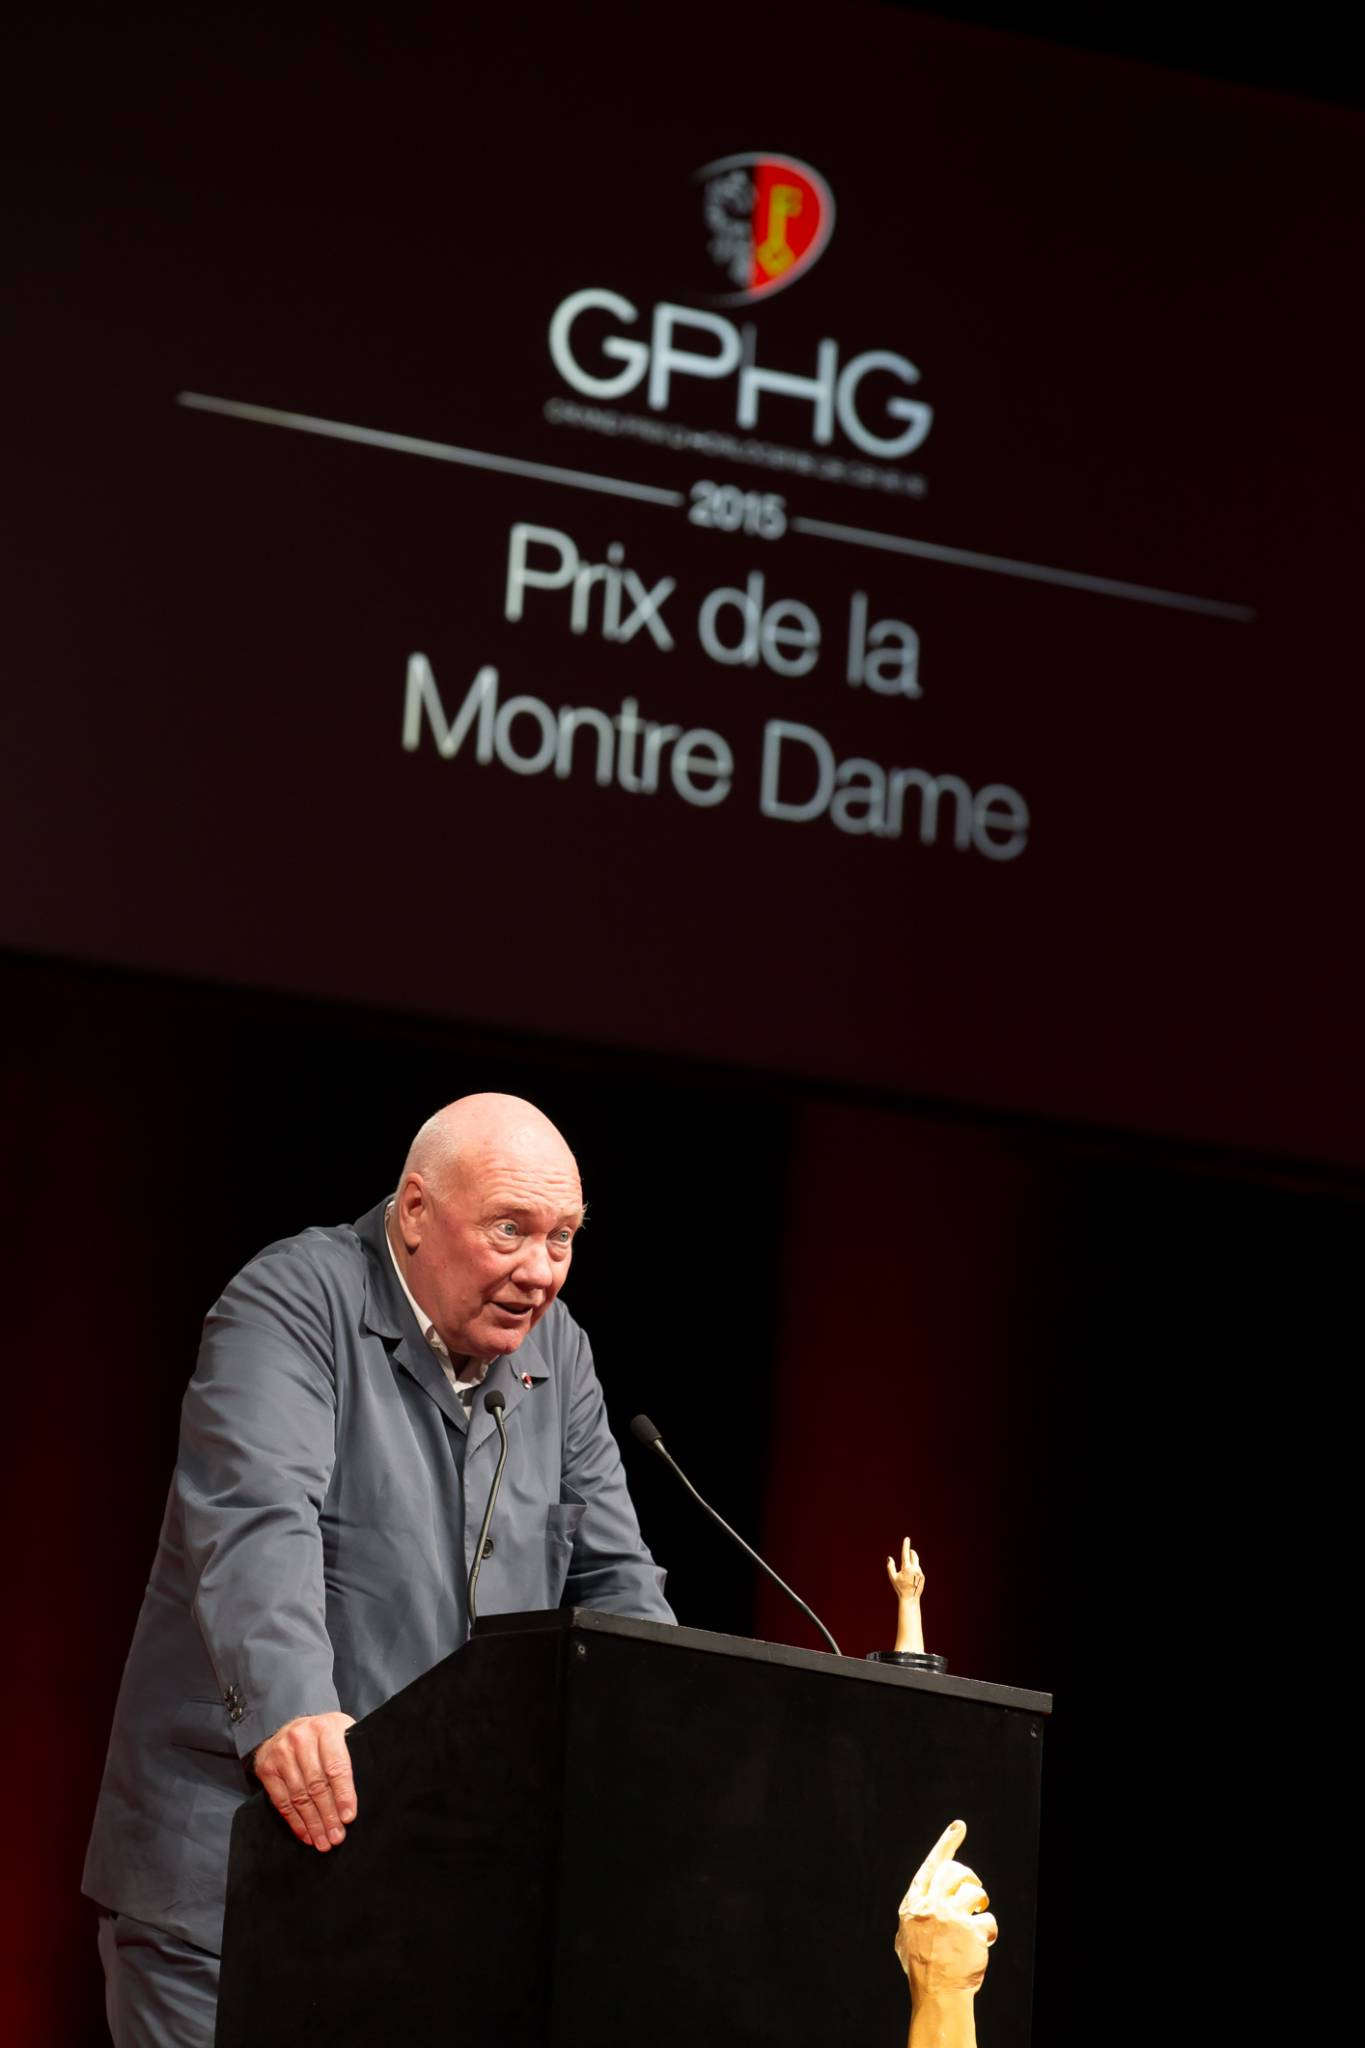 Jean-Claude Biver (President of the Watch Division of the LVMH Group and Chairman of Hublot, winner of the Ladies' Watch Prize 2015)